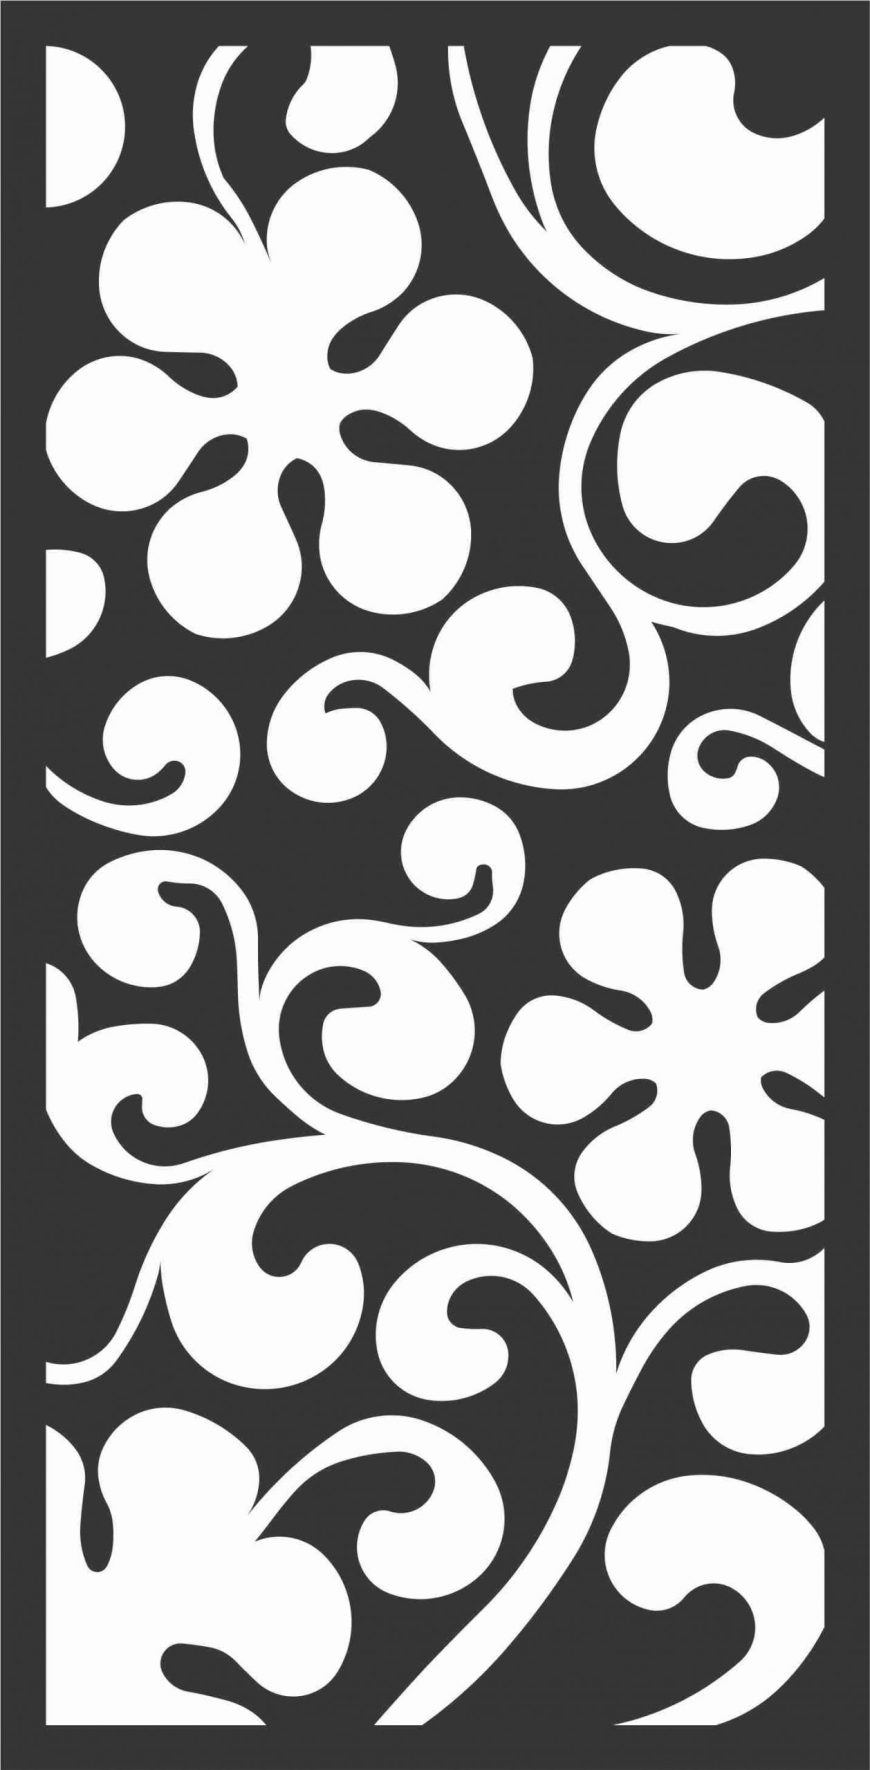 Decorative Screen Patterns For Laser Cutting 69 Free DXF File